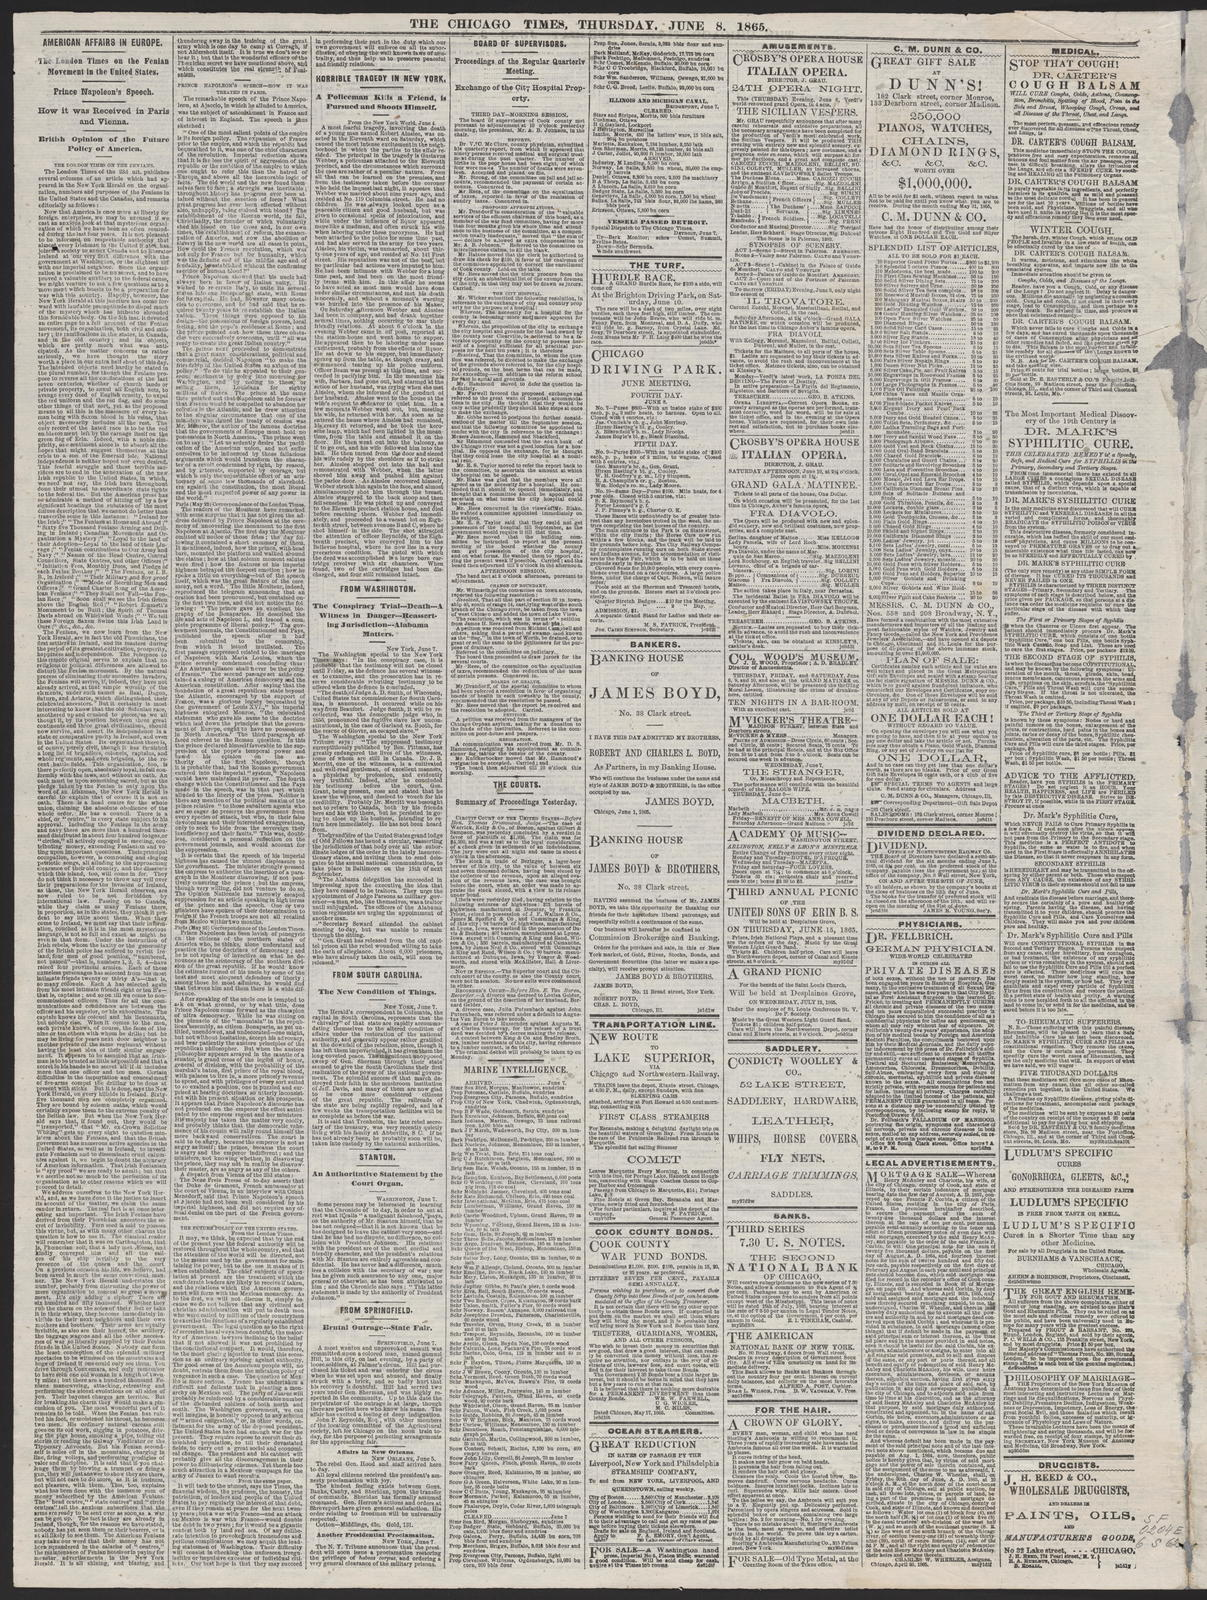 The Chicago Times, [newspaper]. June 8, 1865.